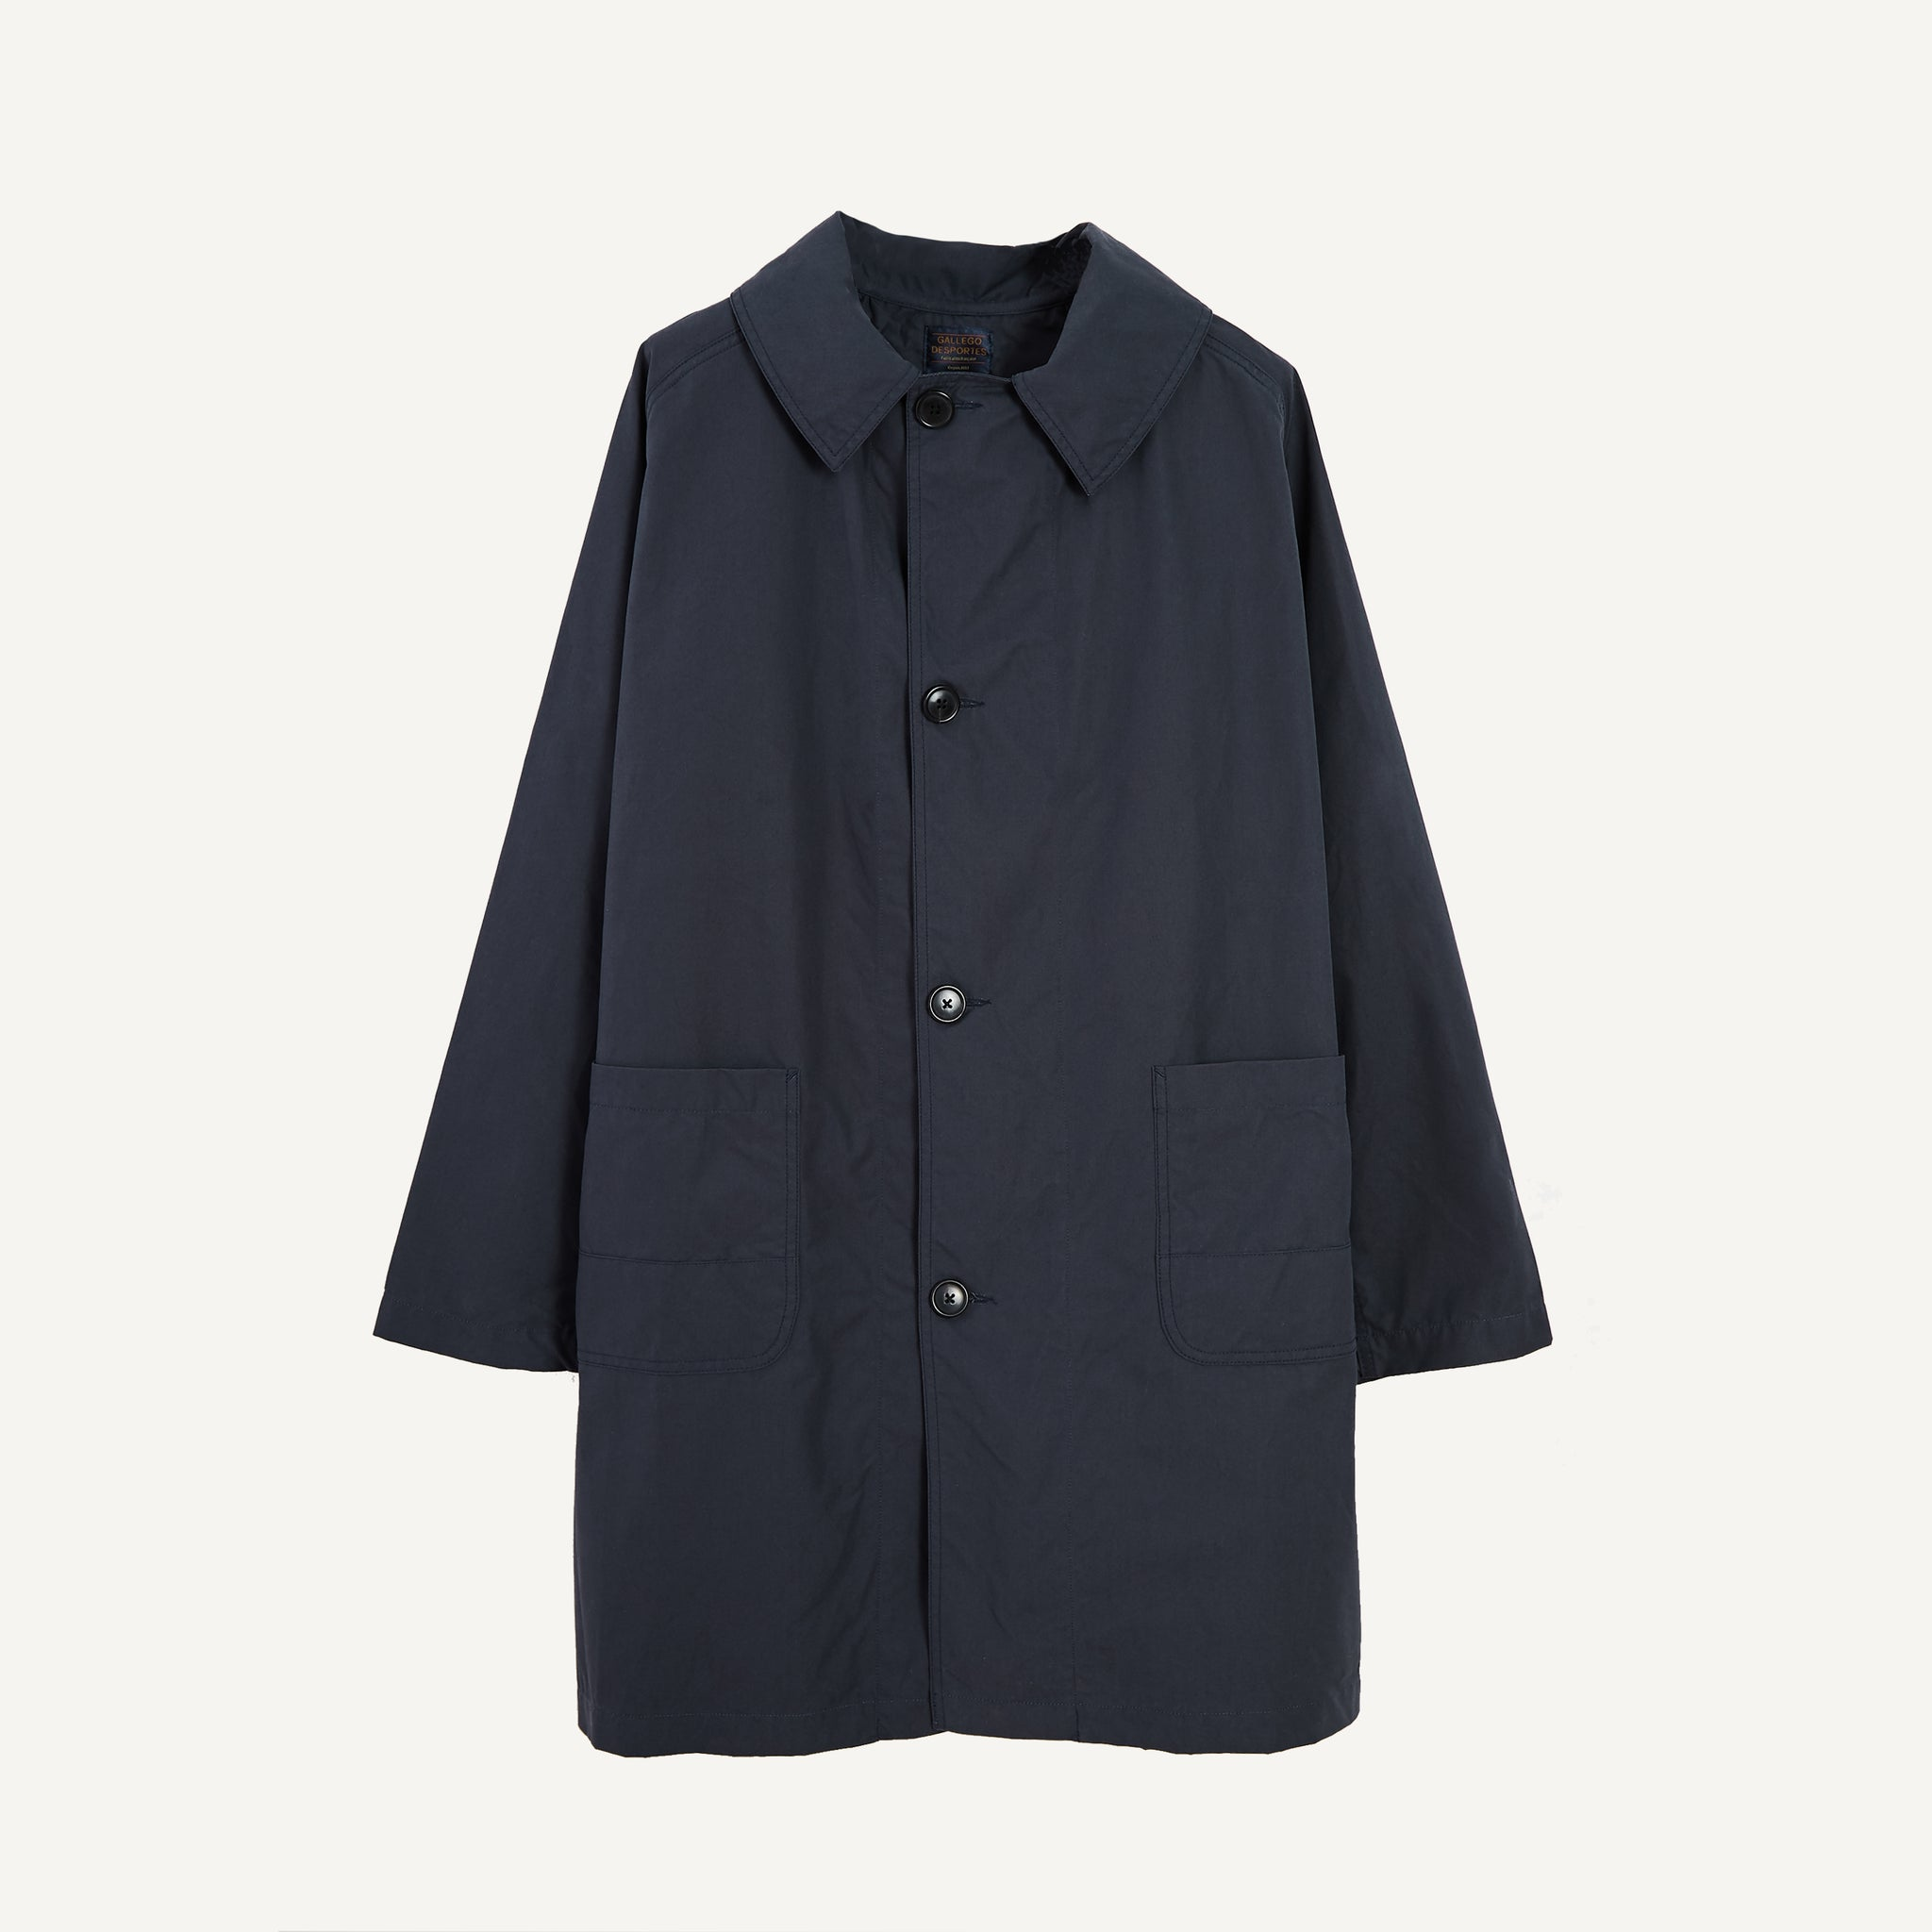 GALLEGO DESPORTES UNISEX TRENCH